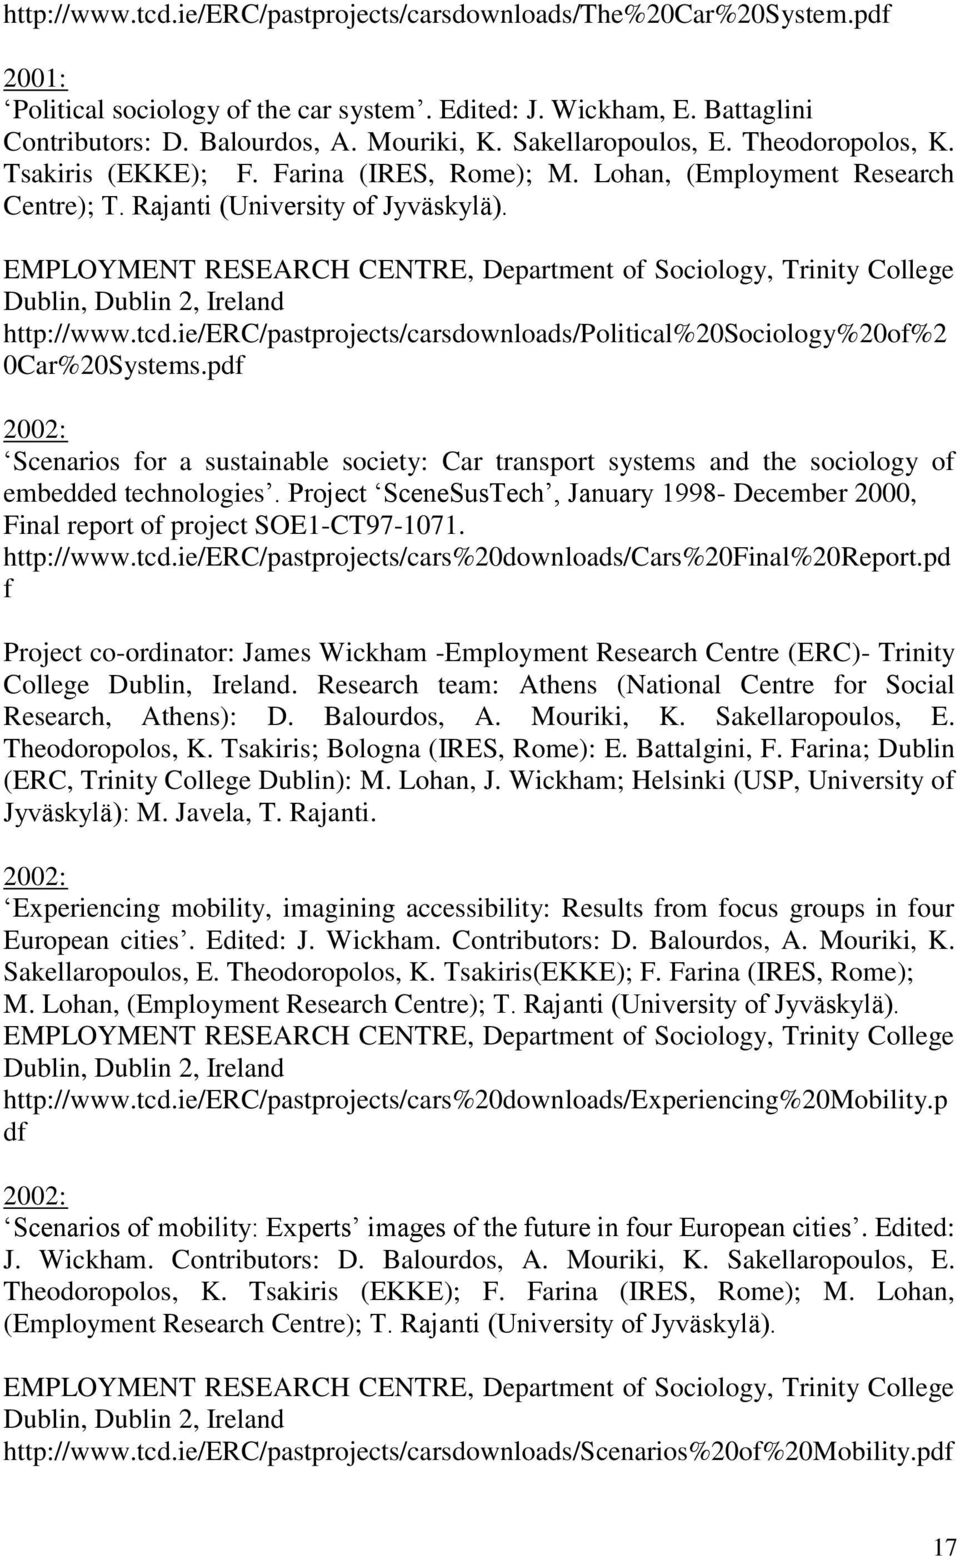 EMPLOYMENT RESEARCH CENTRE, Department of Sociology, Trinity College Dublin, Dublin 2, Ireland http://www.tcd.ie/erc/pastprojects/carsdownloads/political%20sociology%20of%2 0Car%20Systems.